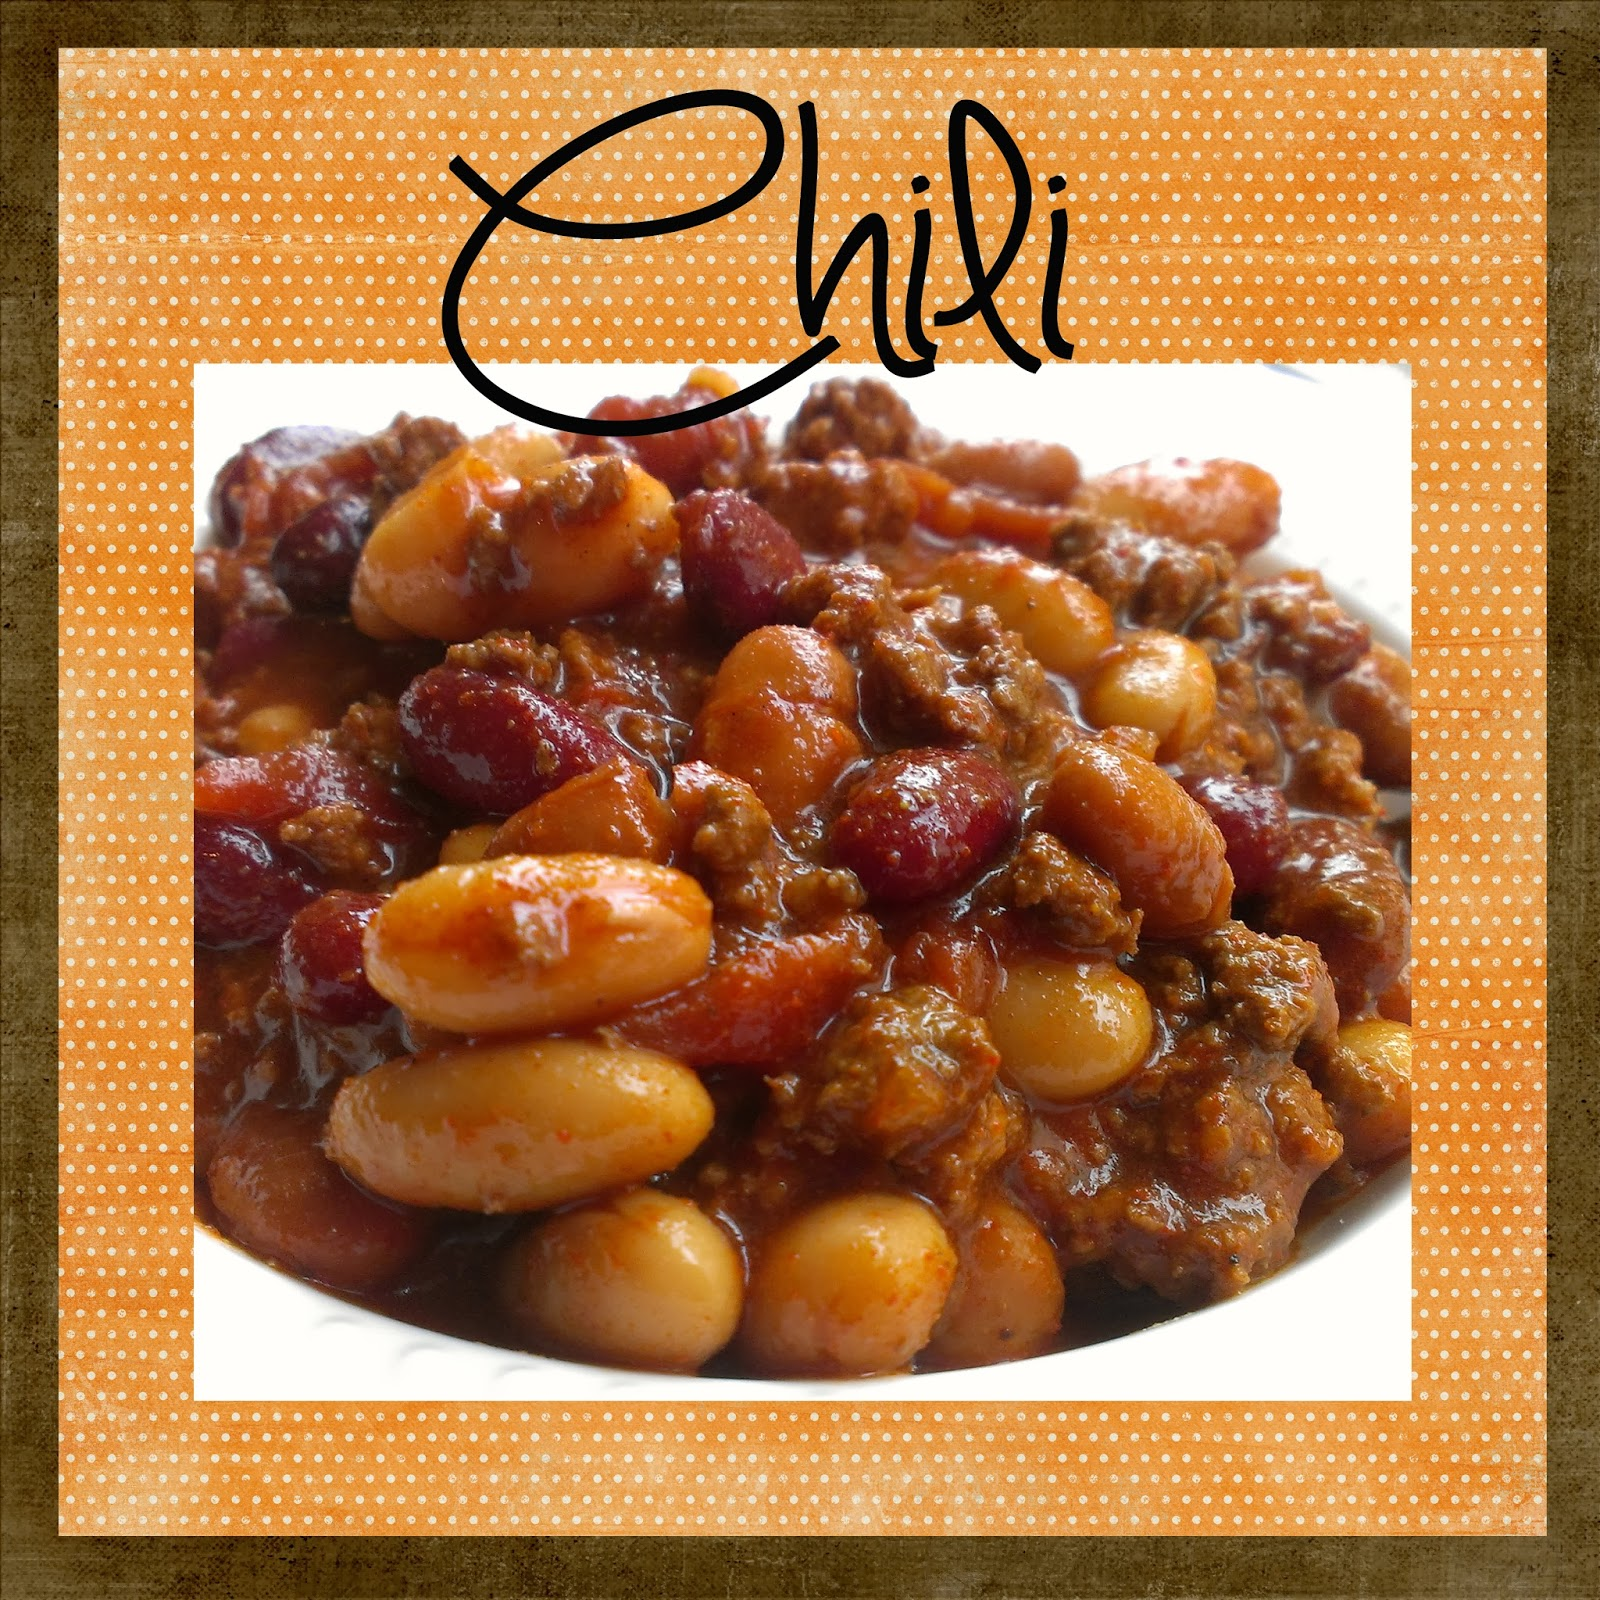 http://gloriouslymade.blogspot.com/2013/11/chili.html